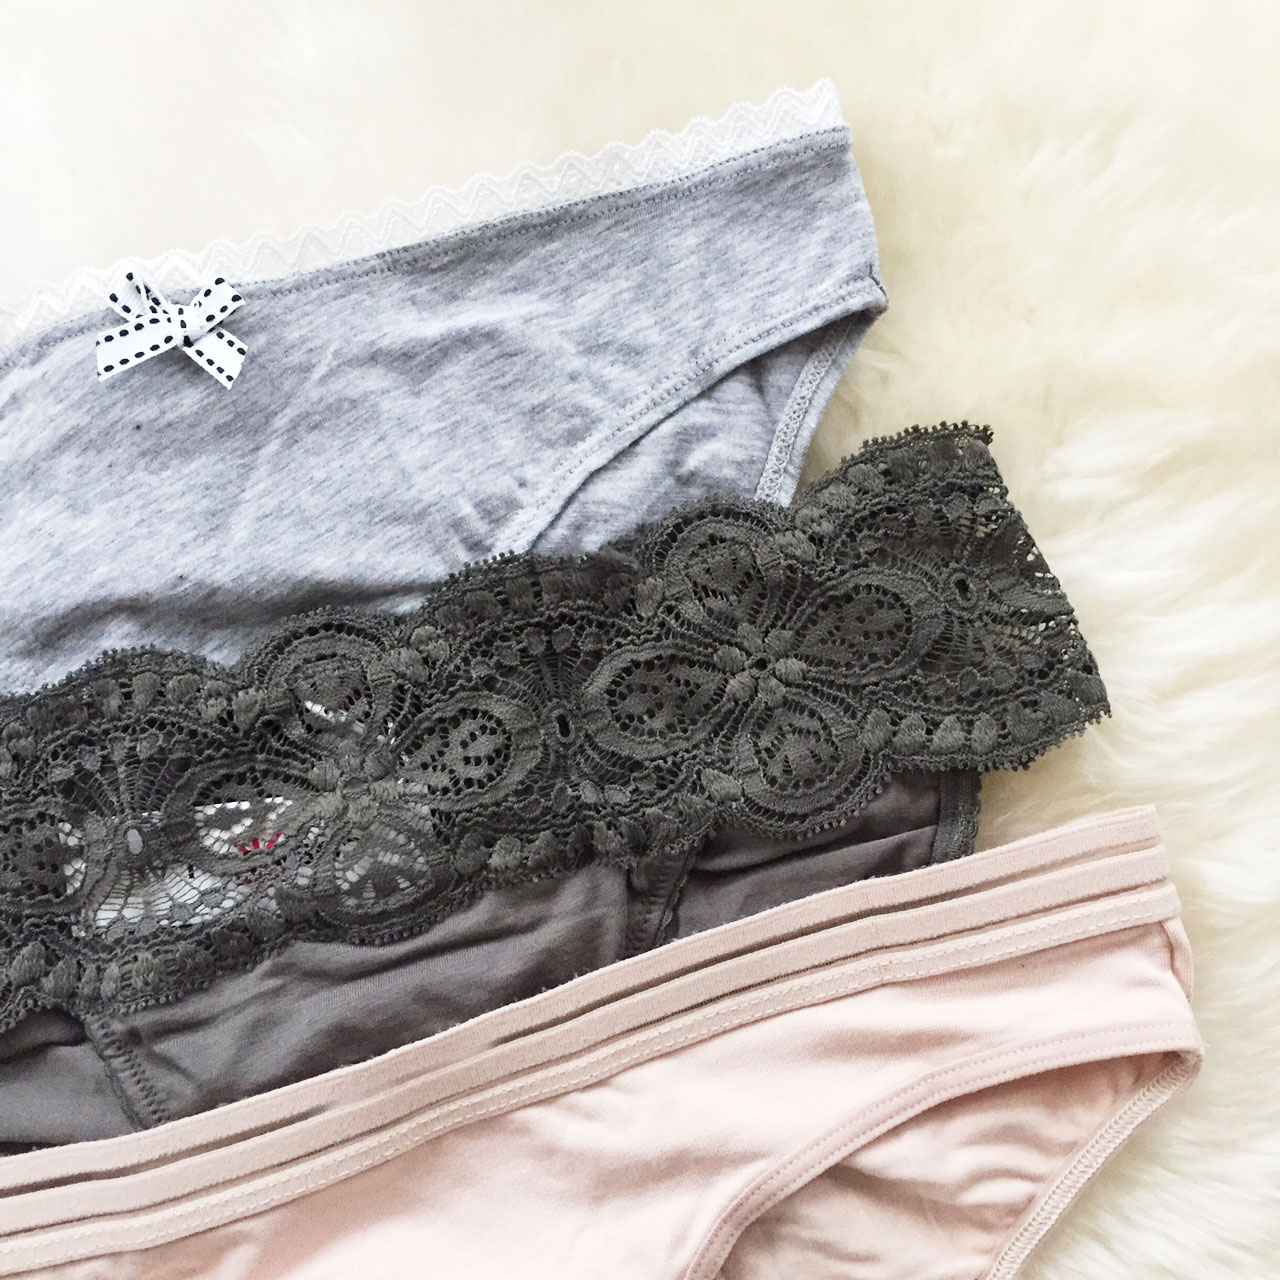 Get beautiful lingerie delivered to your doorstep with this subscription panty box service.